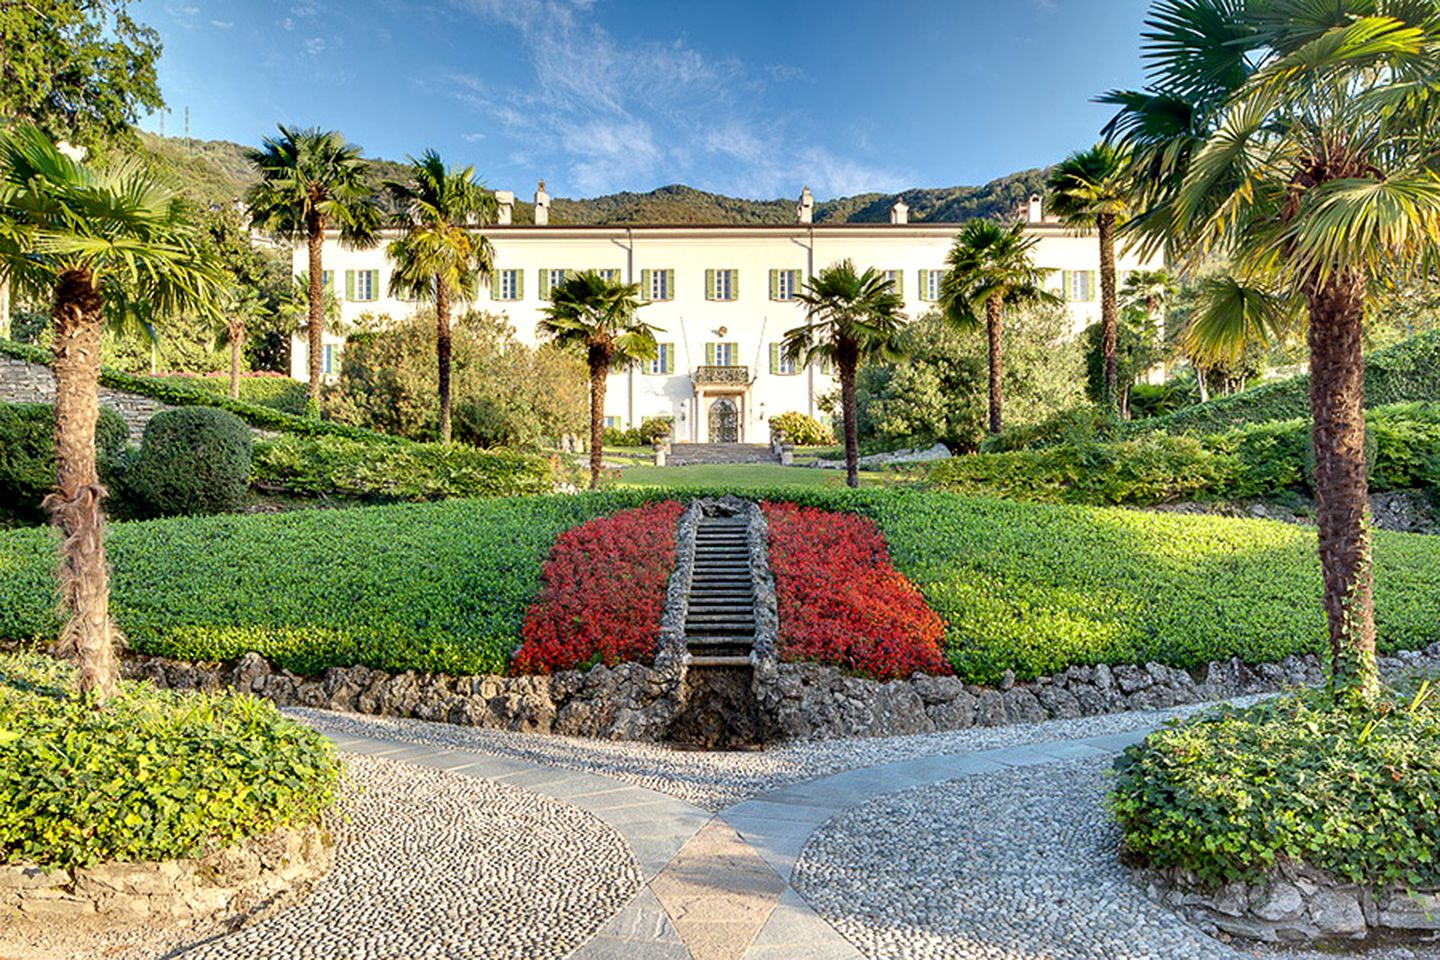 Garden With Swimming Pool luxurious villa rental on lake como with a private dock, gardens, and a  swimming pool in como, italy